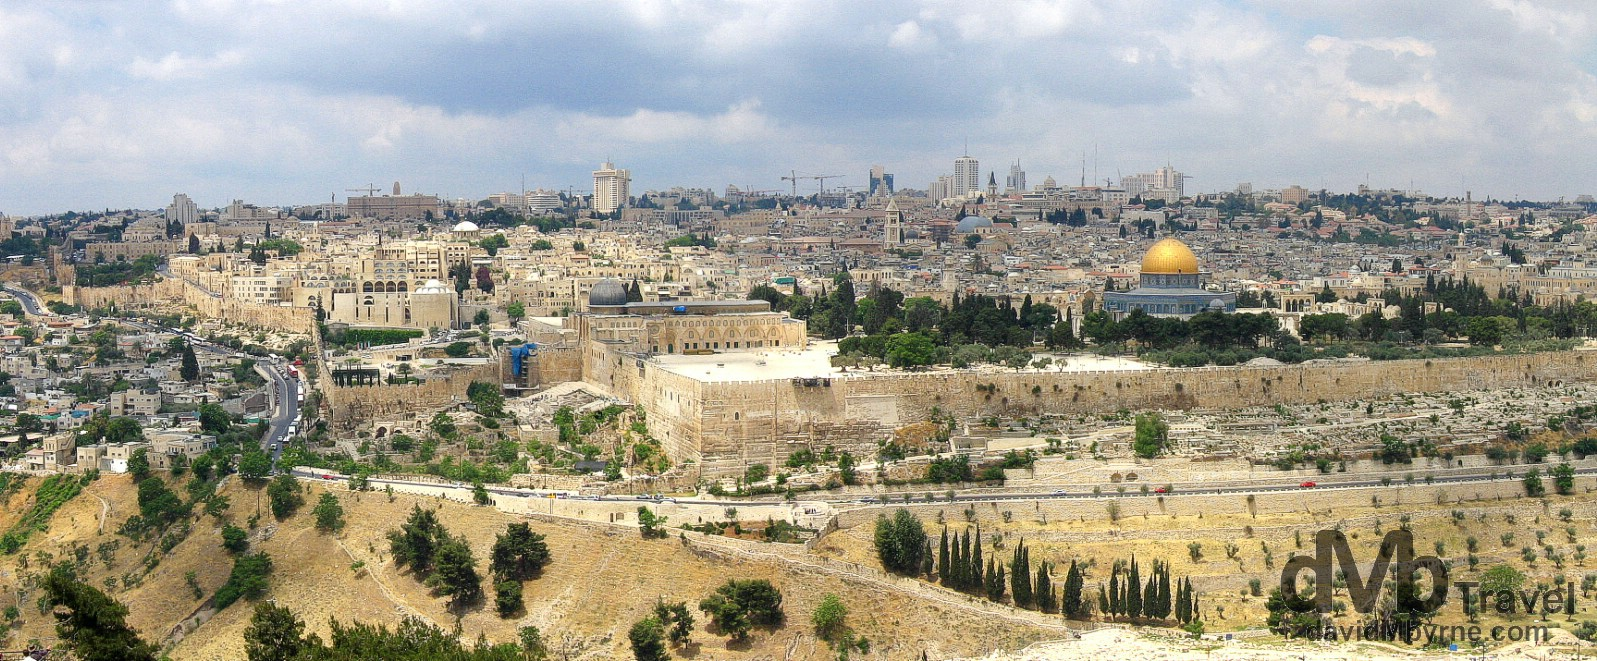 The Old City of Jerusalem as seen from a lookout on the Mount of Olives. Jerusalem, Israel. May 1, 2008.